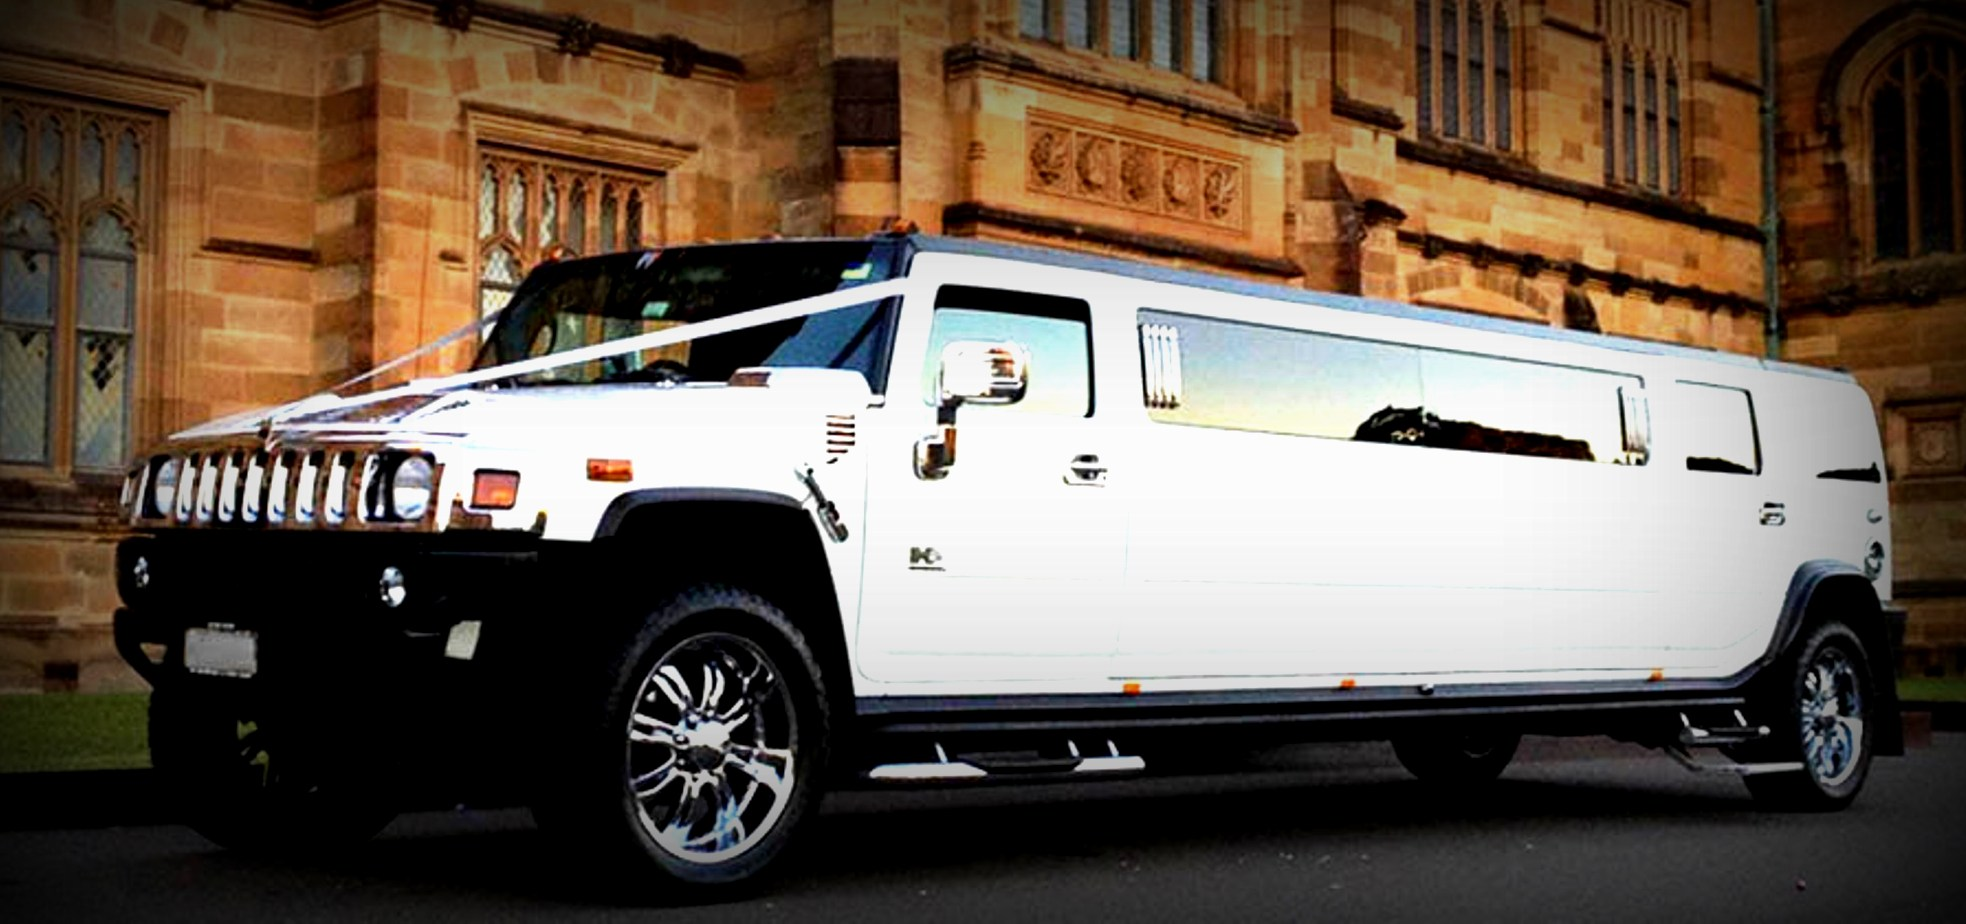 Limousine Services Worldwide Takes Big Steps for the ...